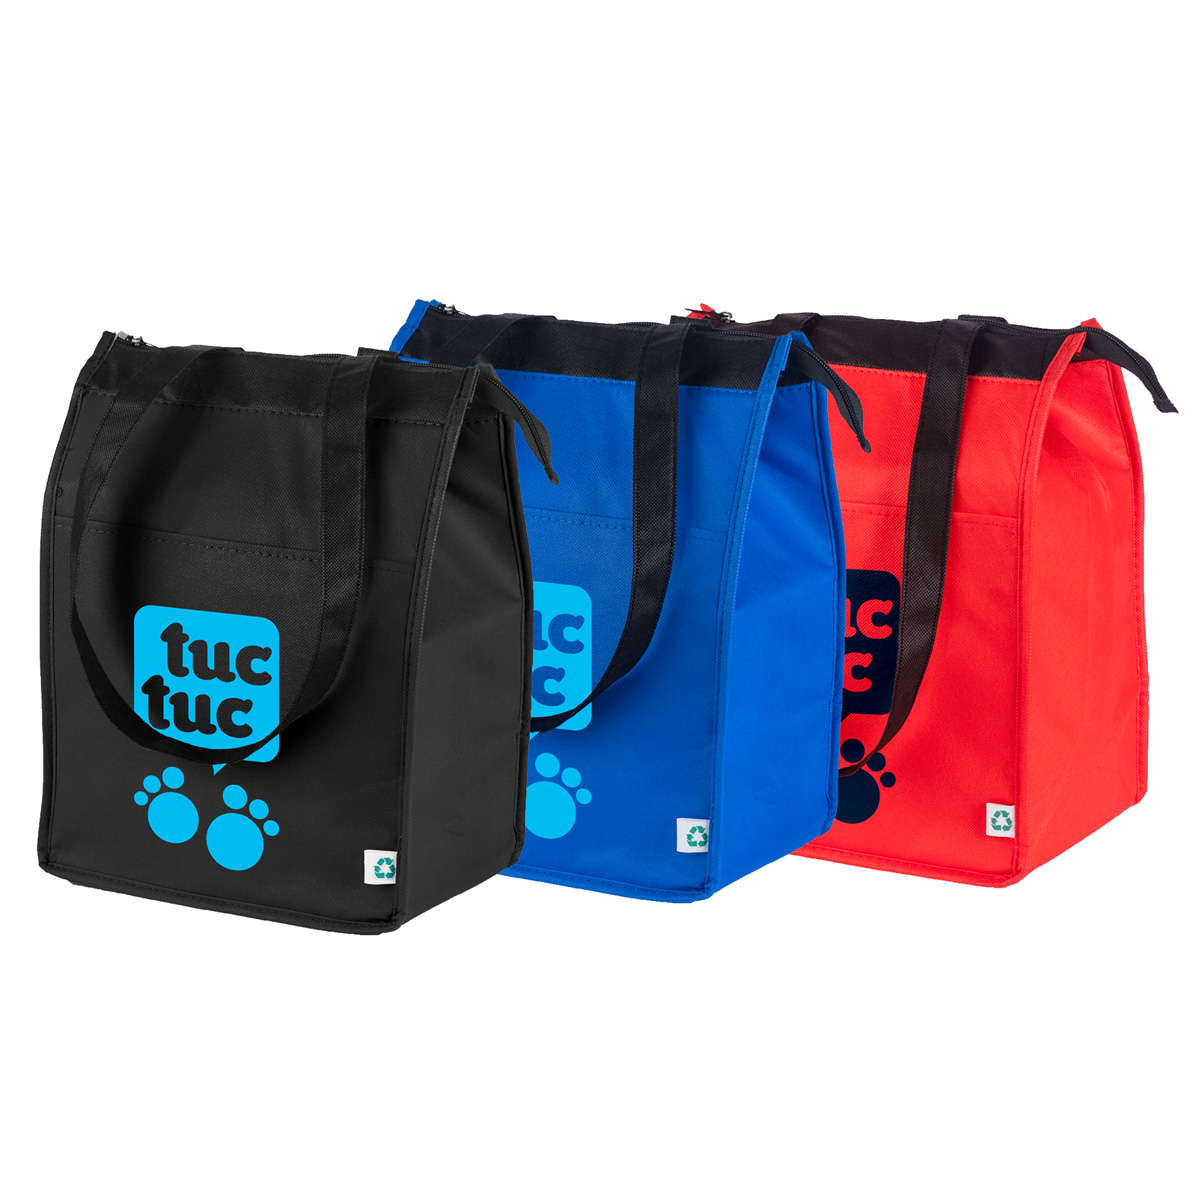 NON-WOVEN BAG COOLERS